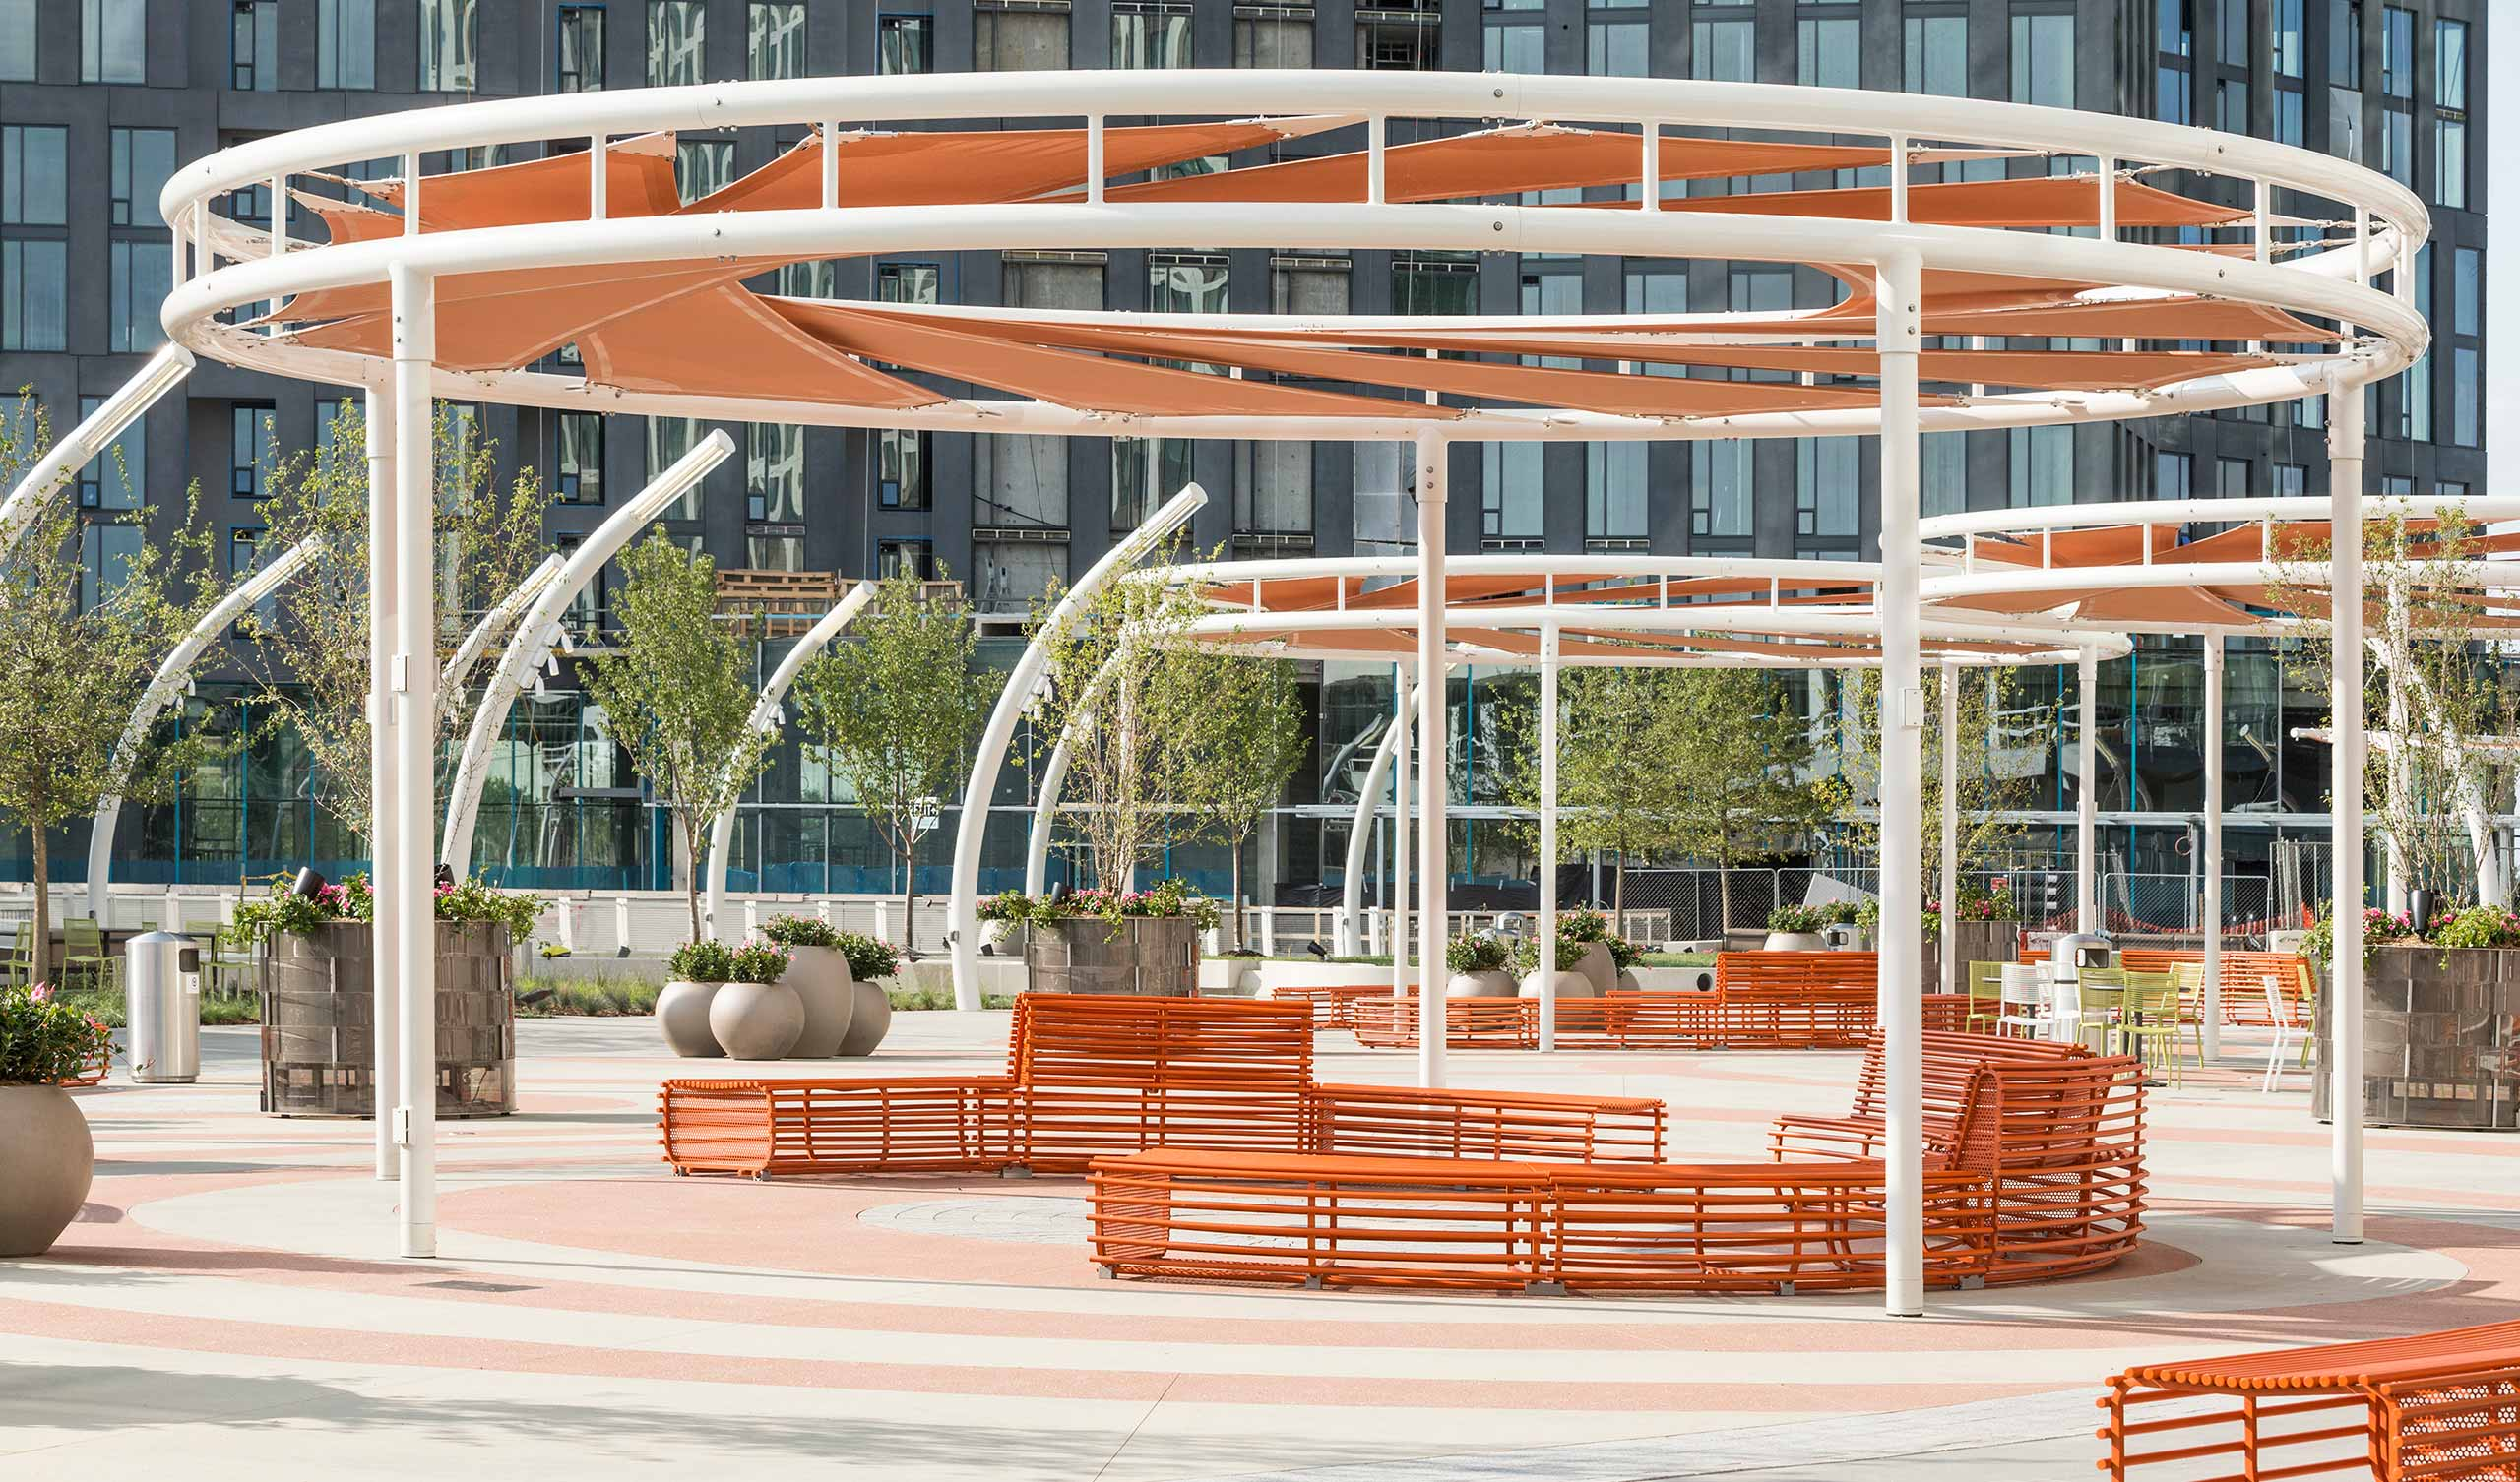 The Rio outdoor furniture was designed for Tyson's Corner Center, an urban mixed-use development